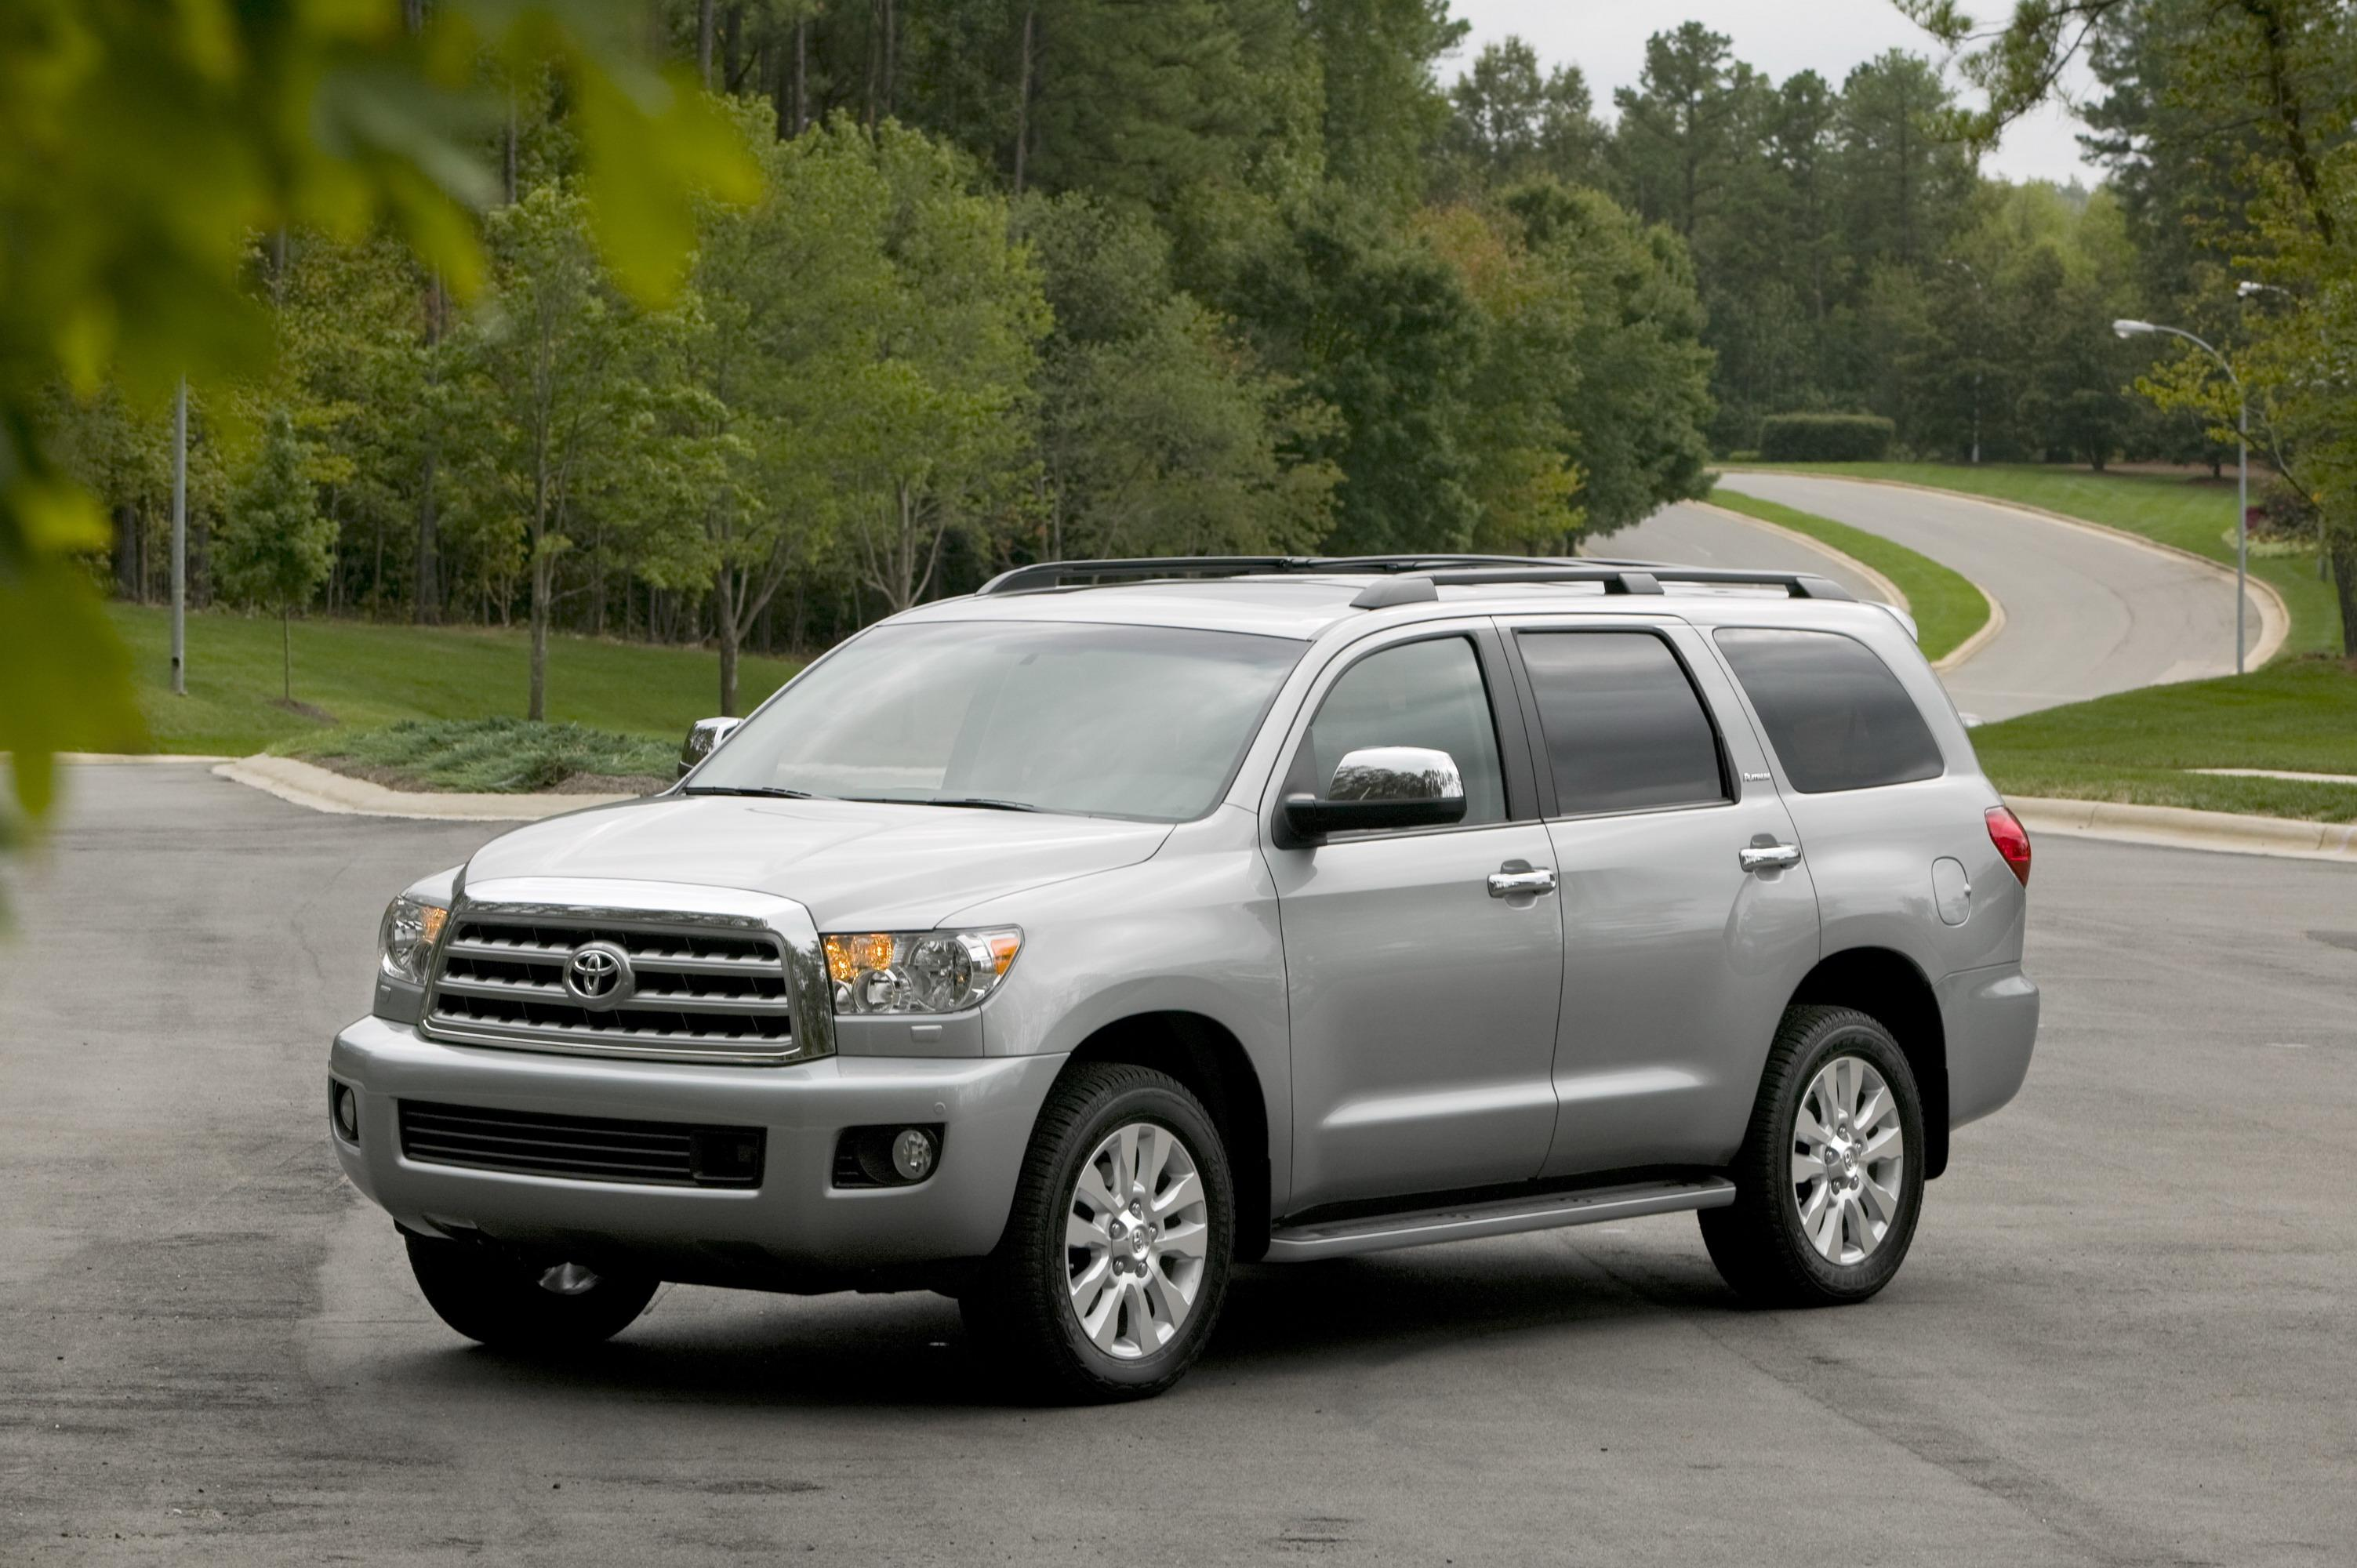 2008 toyota sequoia review top speed. Black Bedroom Furniture Sets. Home Design Ideas